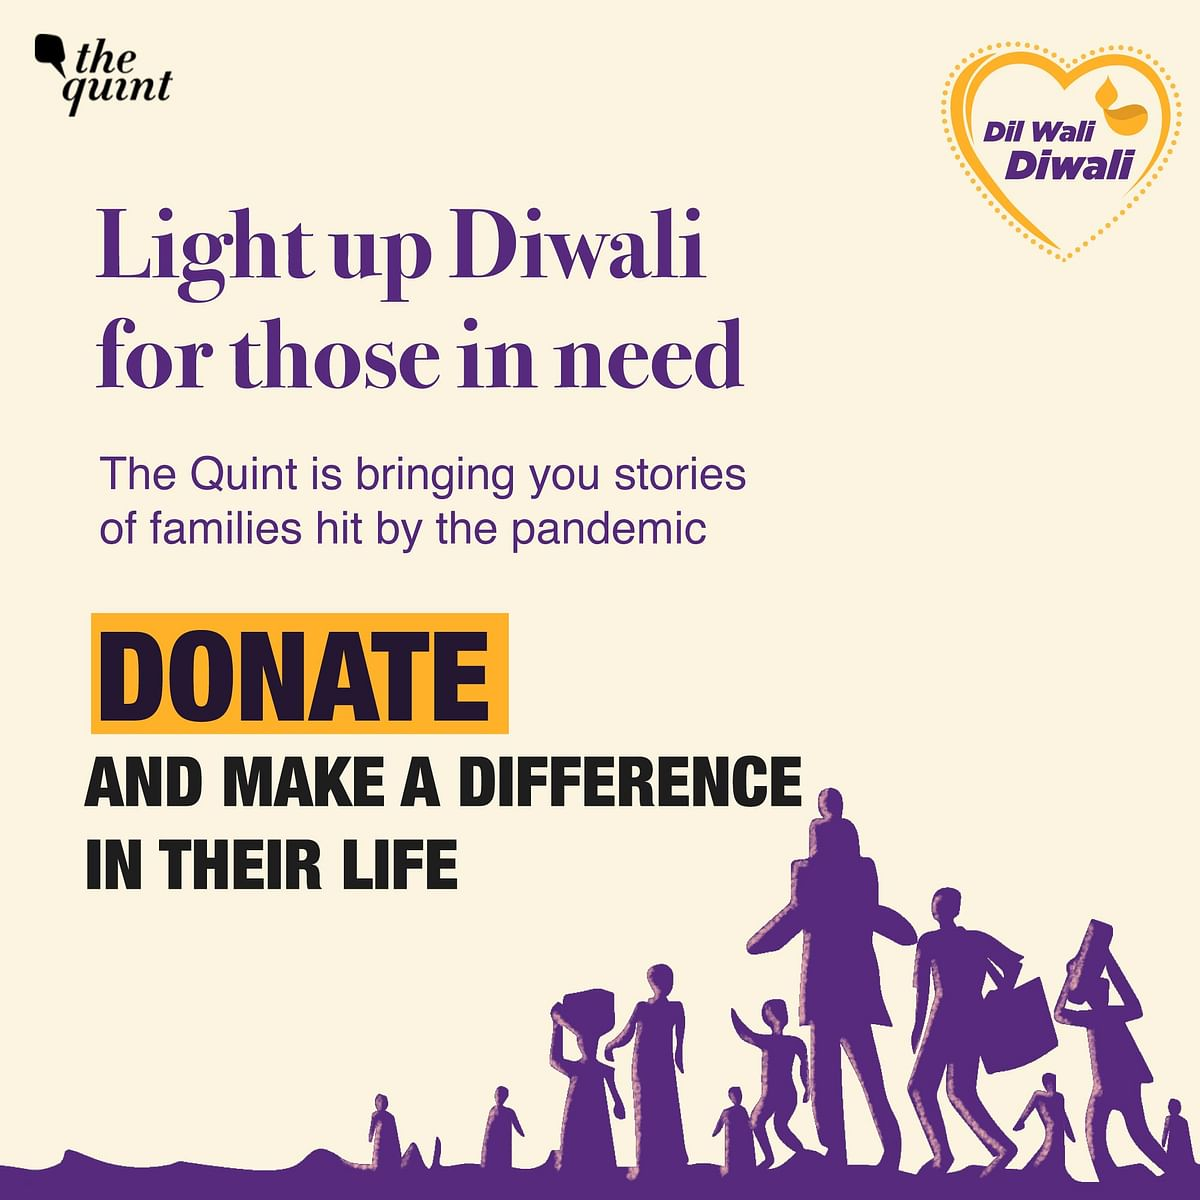 'Dil Wali Diwali', your chance to help those who suffered during the pandemic.